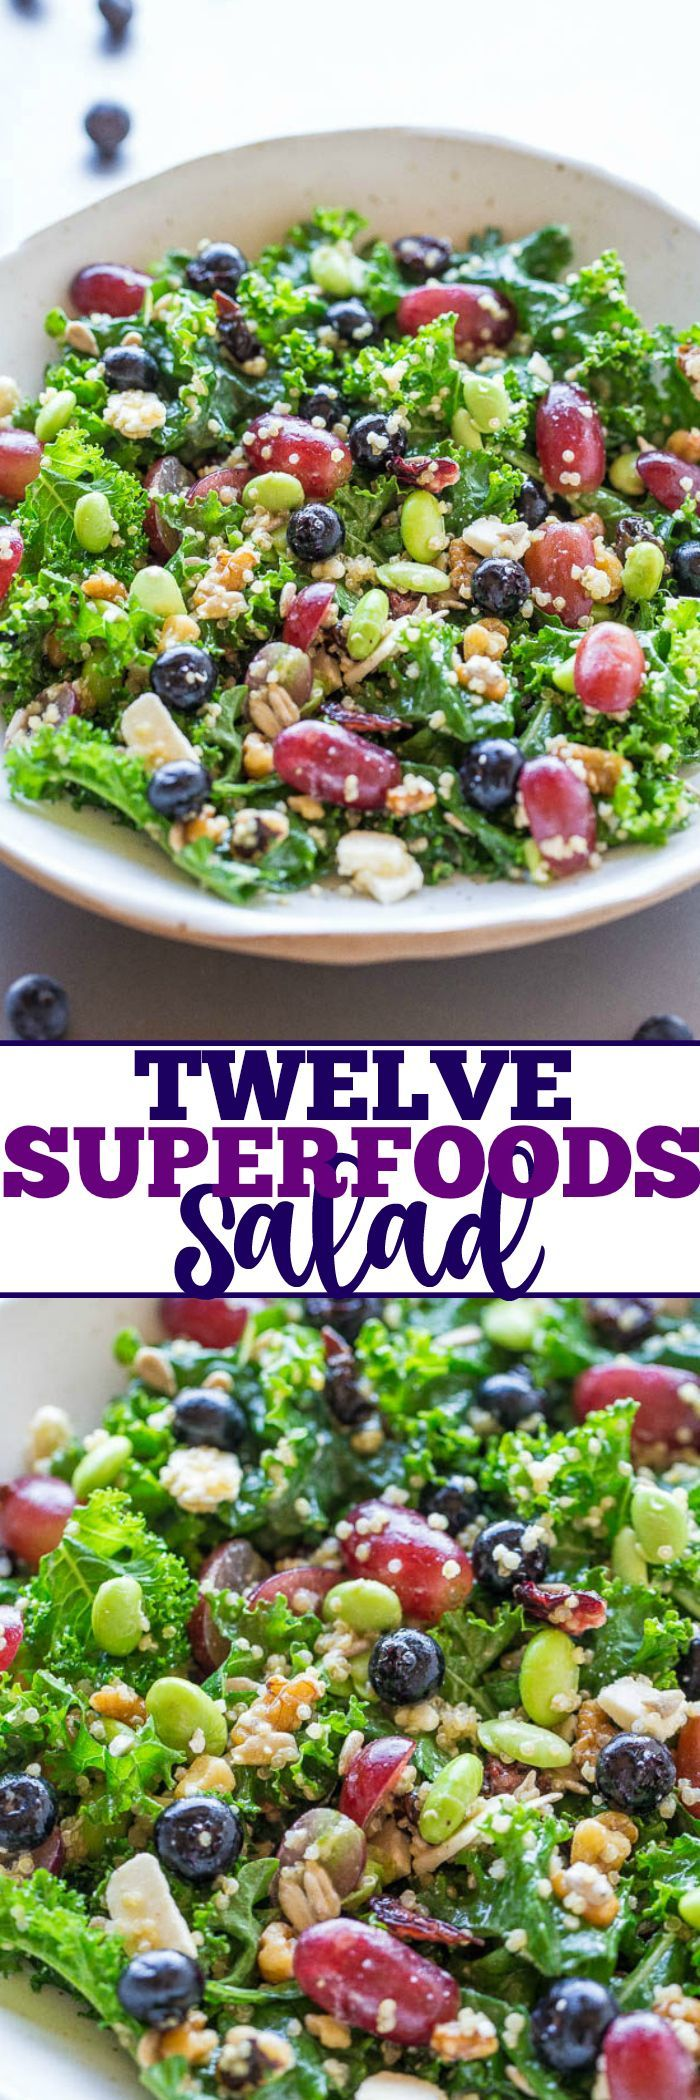 Superfoods Salad Twelve Superfoods Salad - Trying to eat healthier? MAKE THIS easy, flavorful salad!! Loaded with everything HEALTHY and it tastes awesome! Kale, quinoa, edamame, blueberries, grapes, seeds, nuts, and more!!Twelve Superfoods Salad - Trying to eat healthier? MAKE THIS easy, flavorful salad!! Loaded with everything HEALTHY and it ...